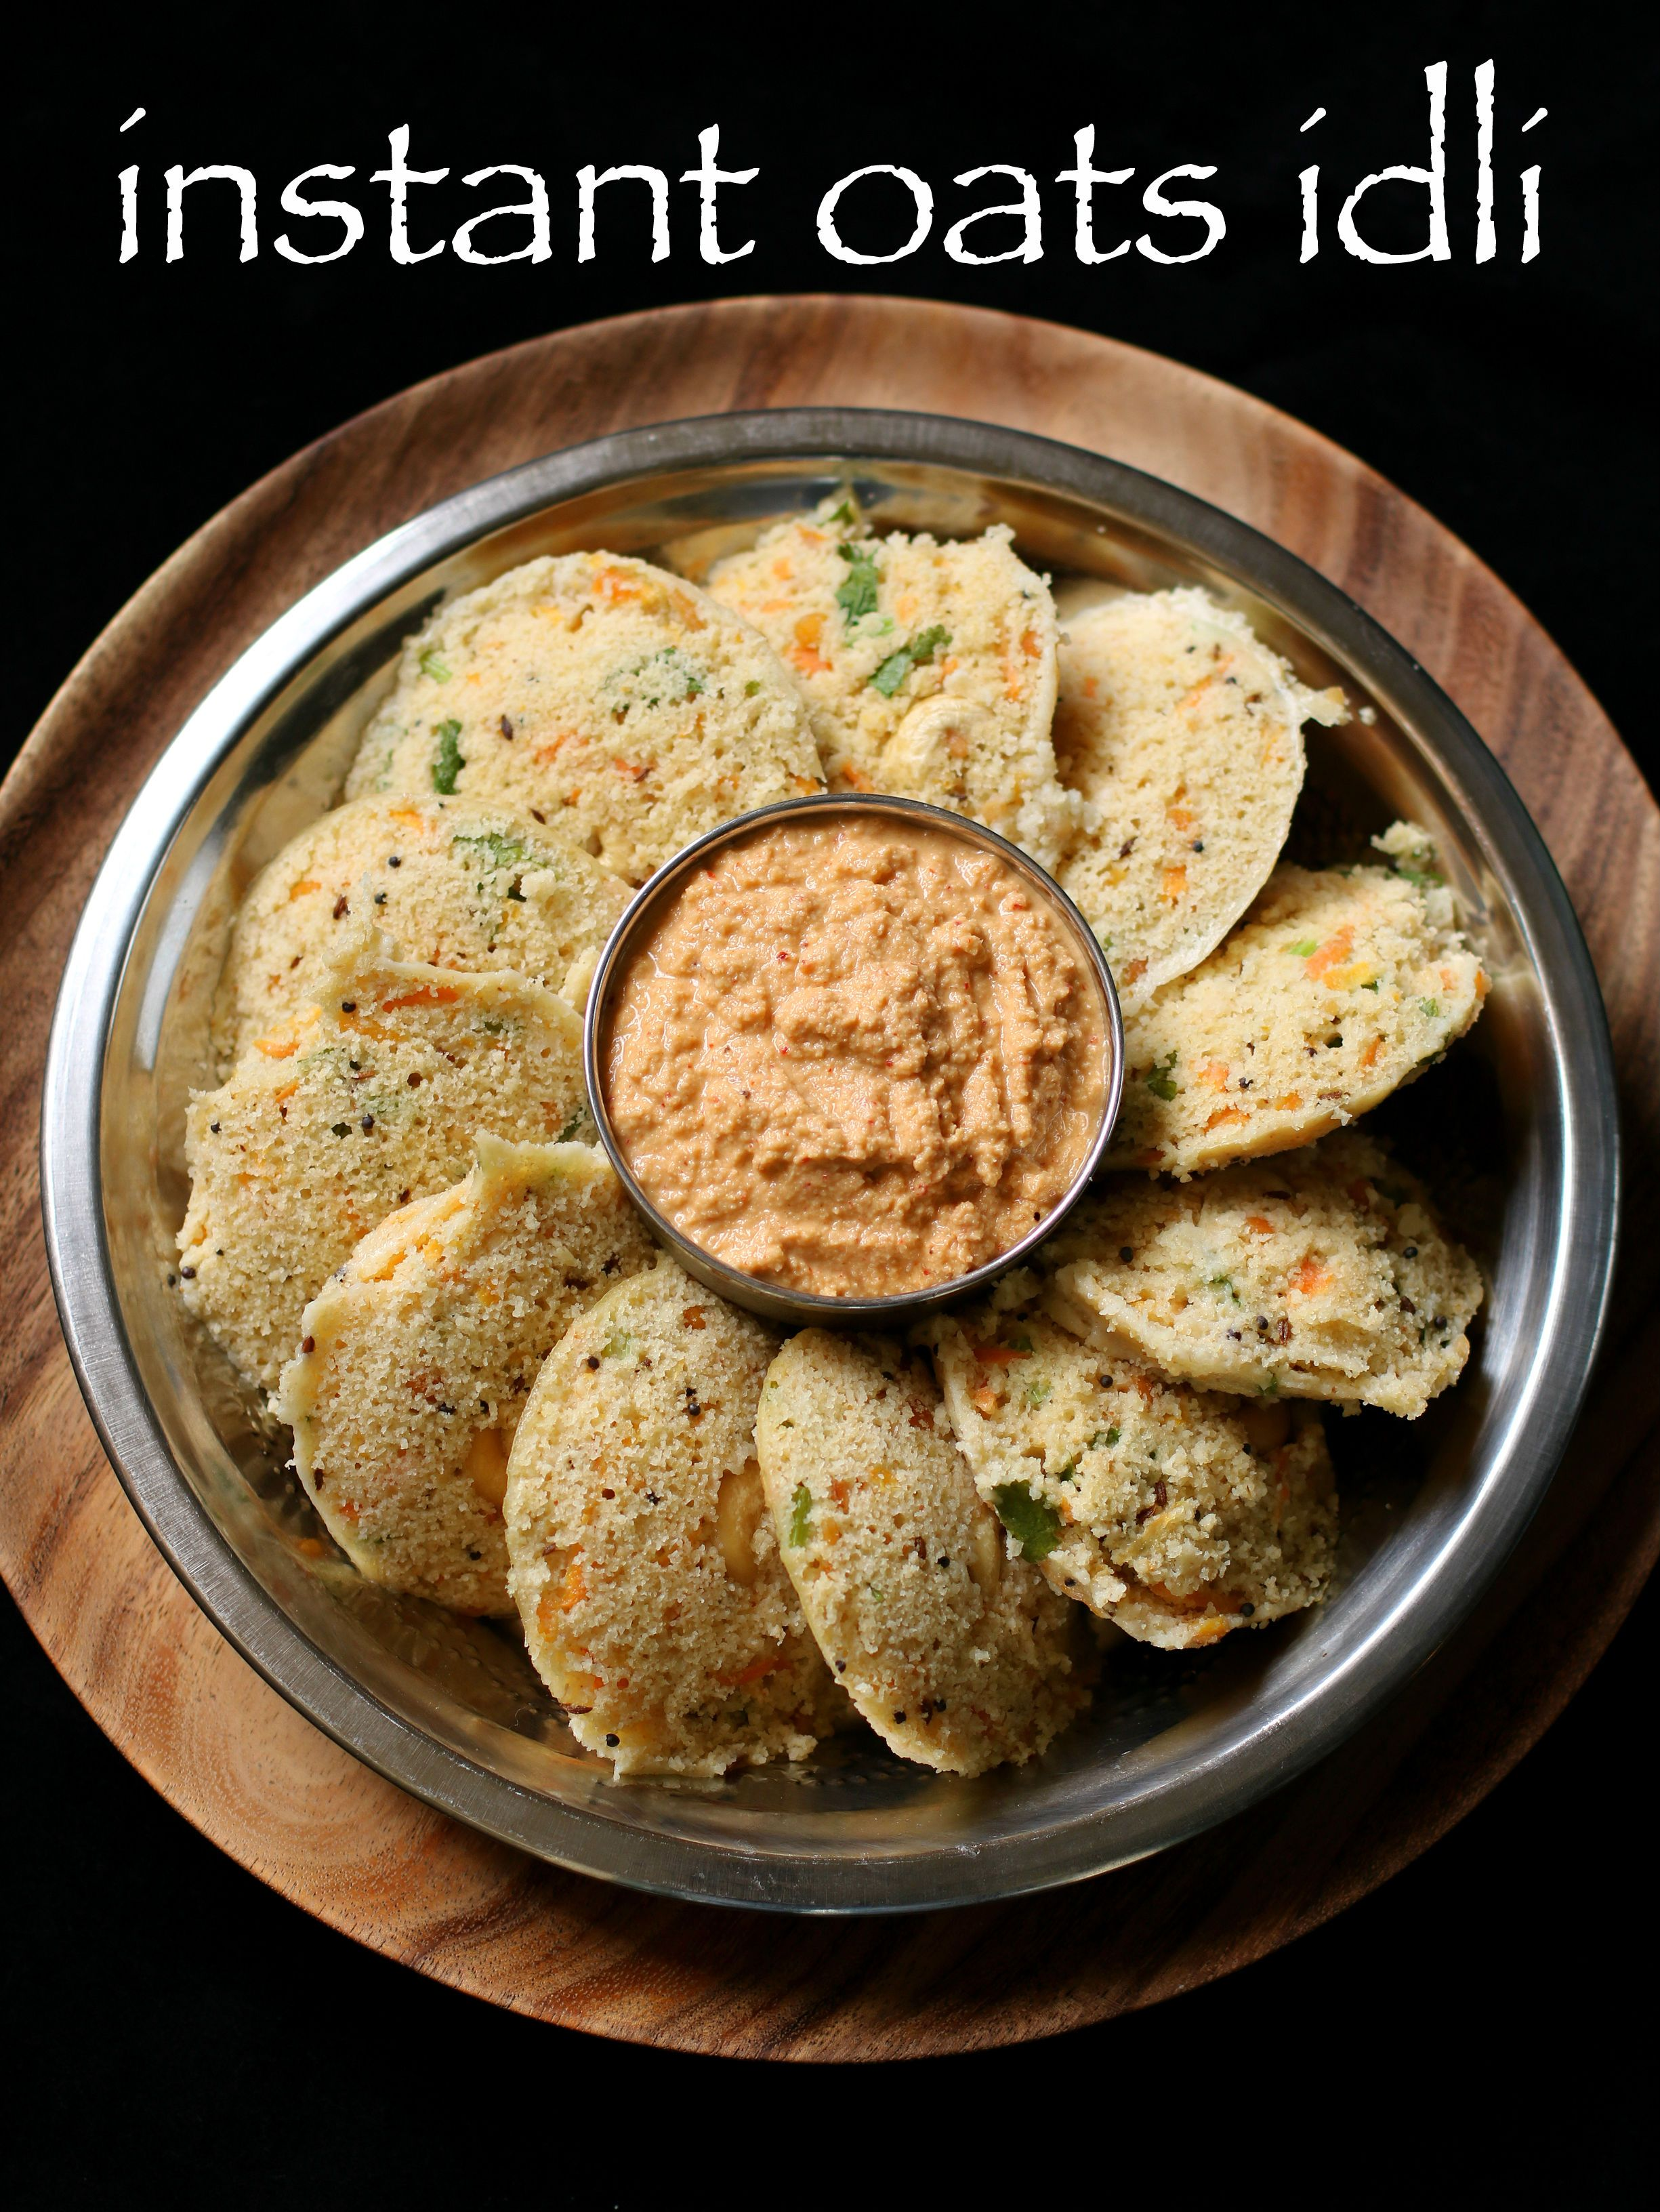 oats idli recipe instant oats idli steamed oatmeal idli recipe idli recipe oats idli on hebbar s kitchen recipes oats id=66024